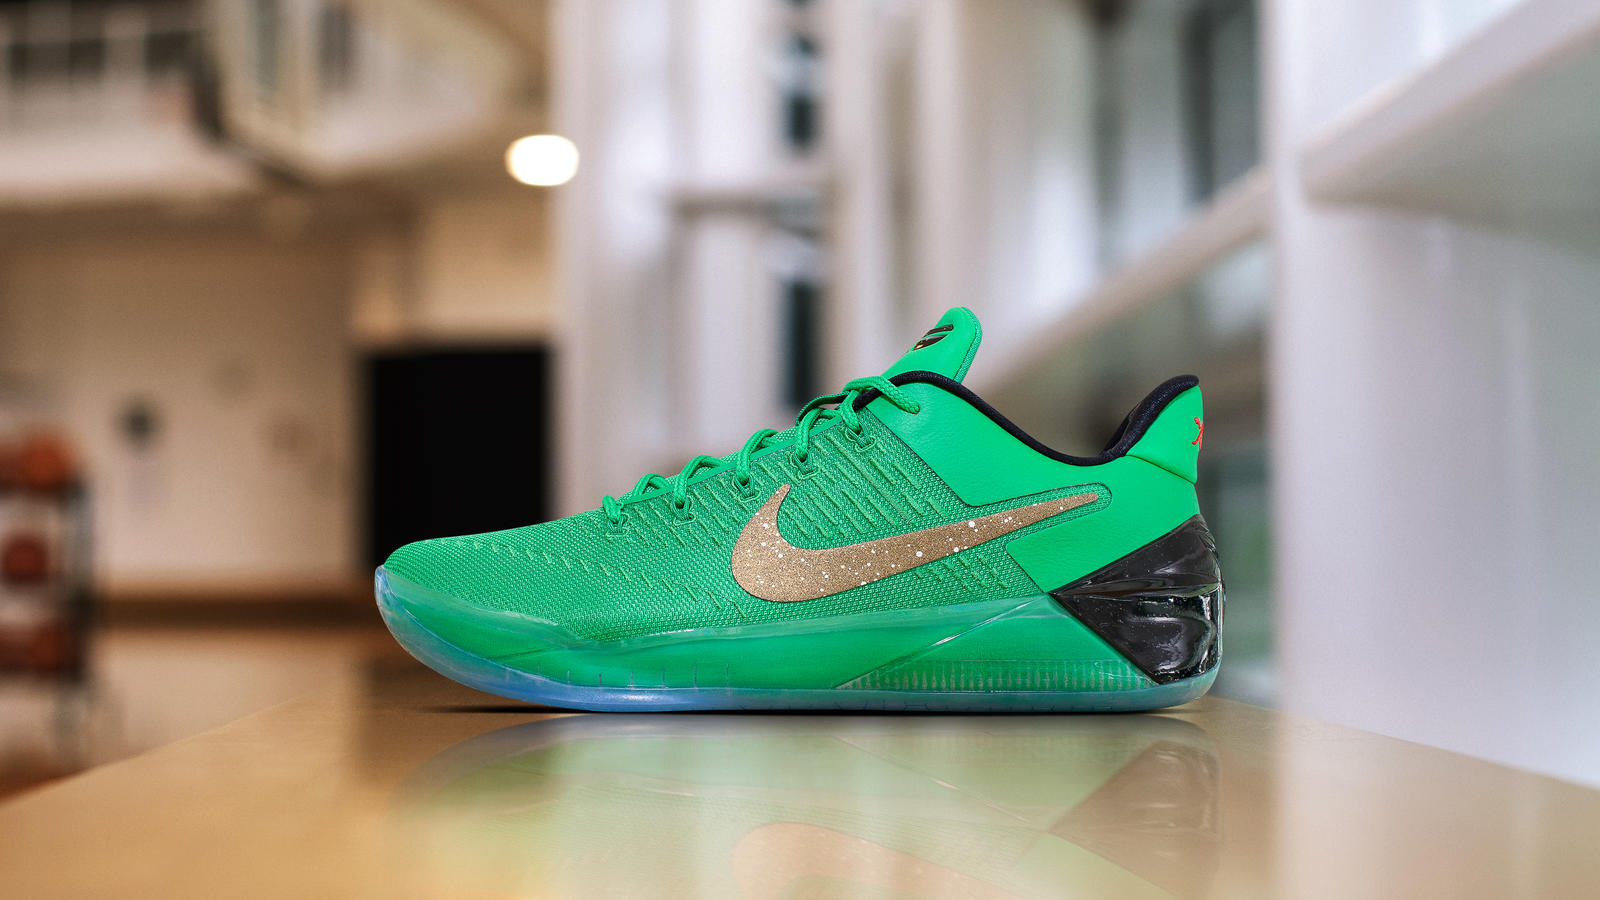 bd5d68c02b Kobe A.D. PE All-Star - Nike News